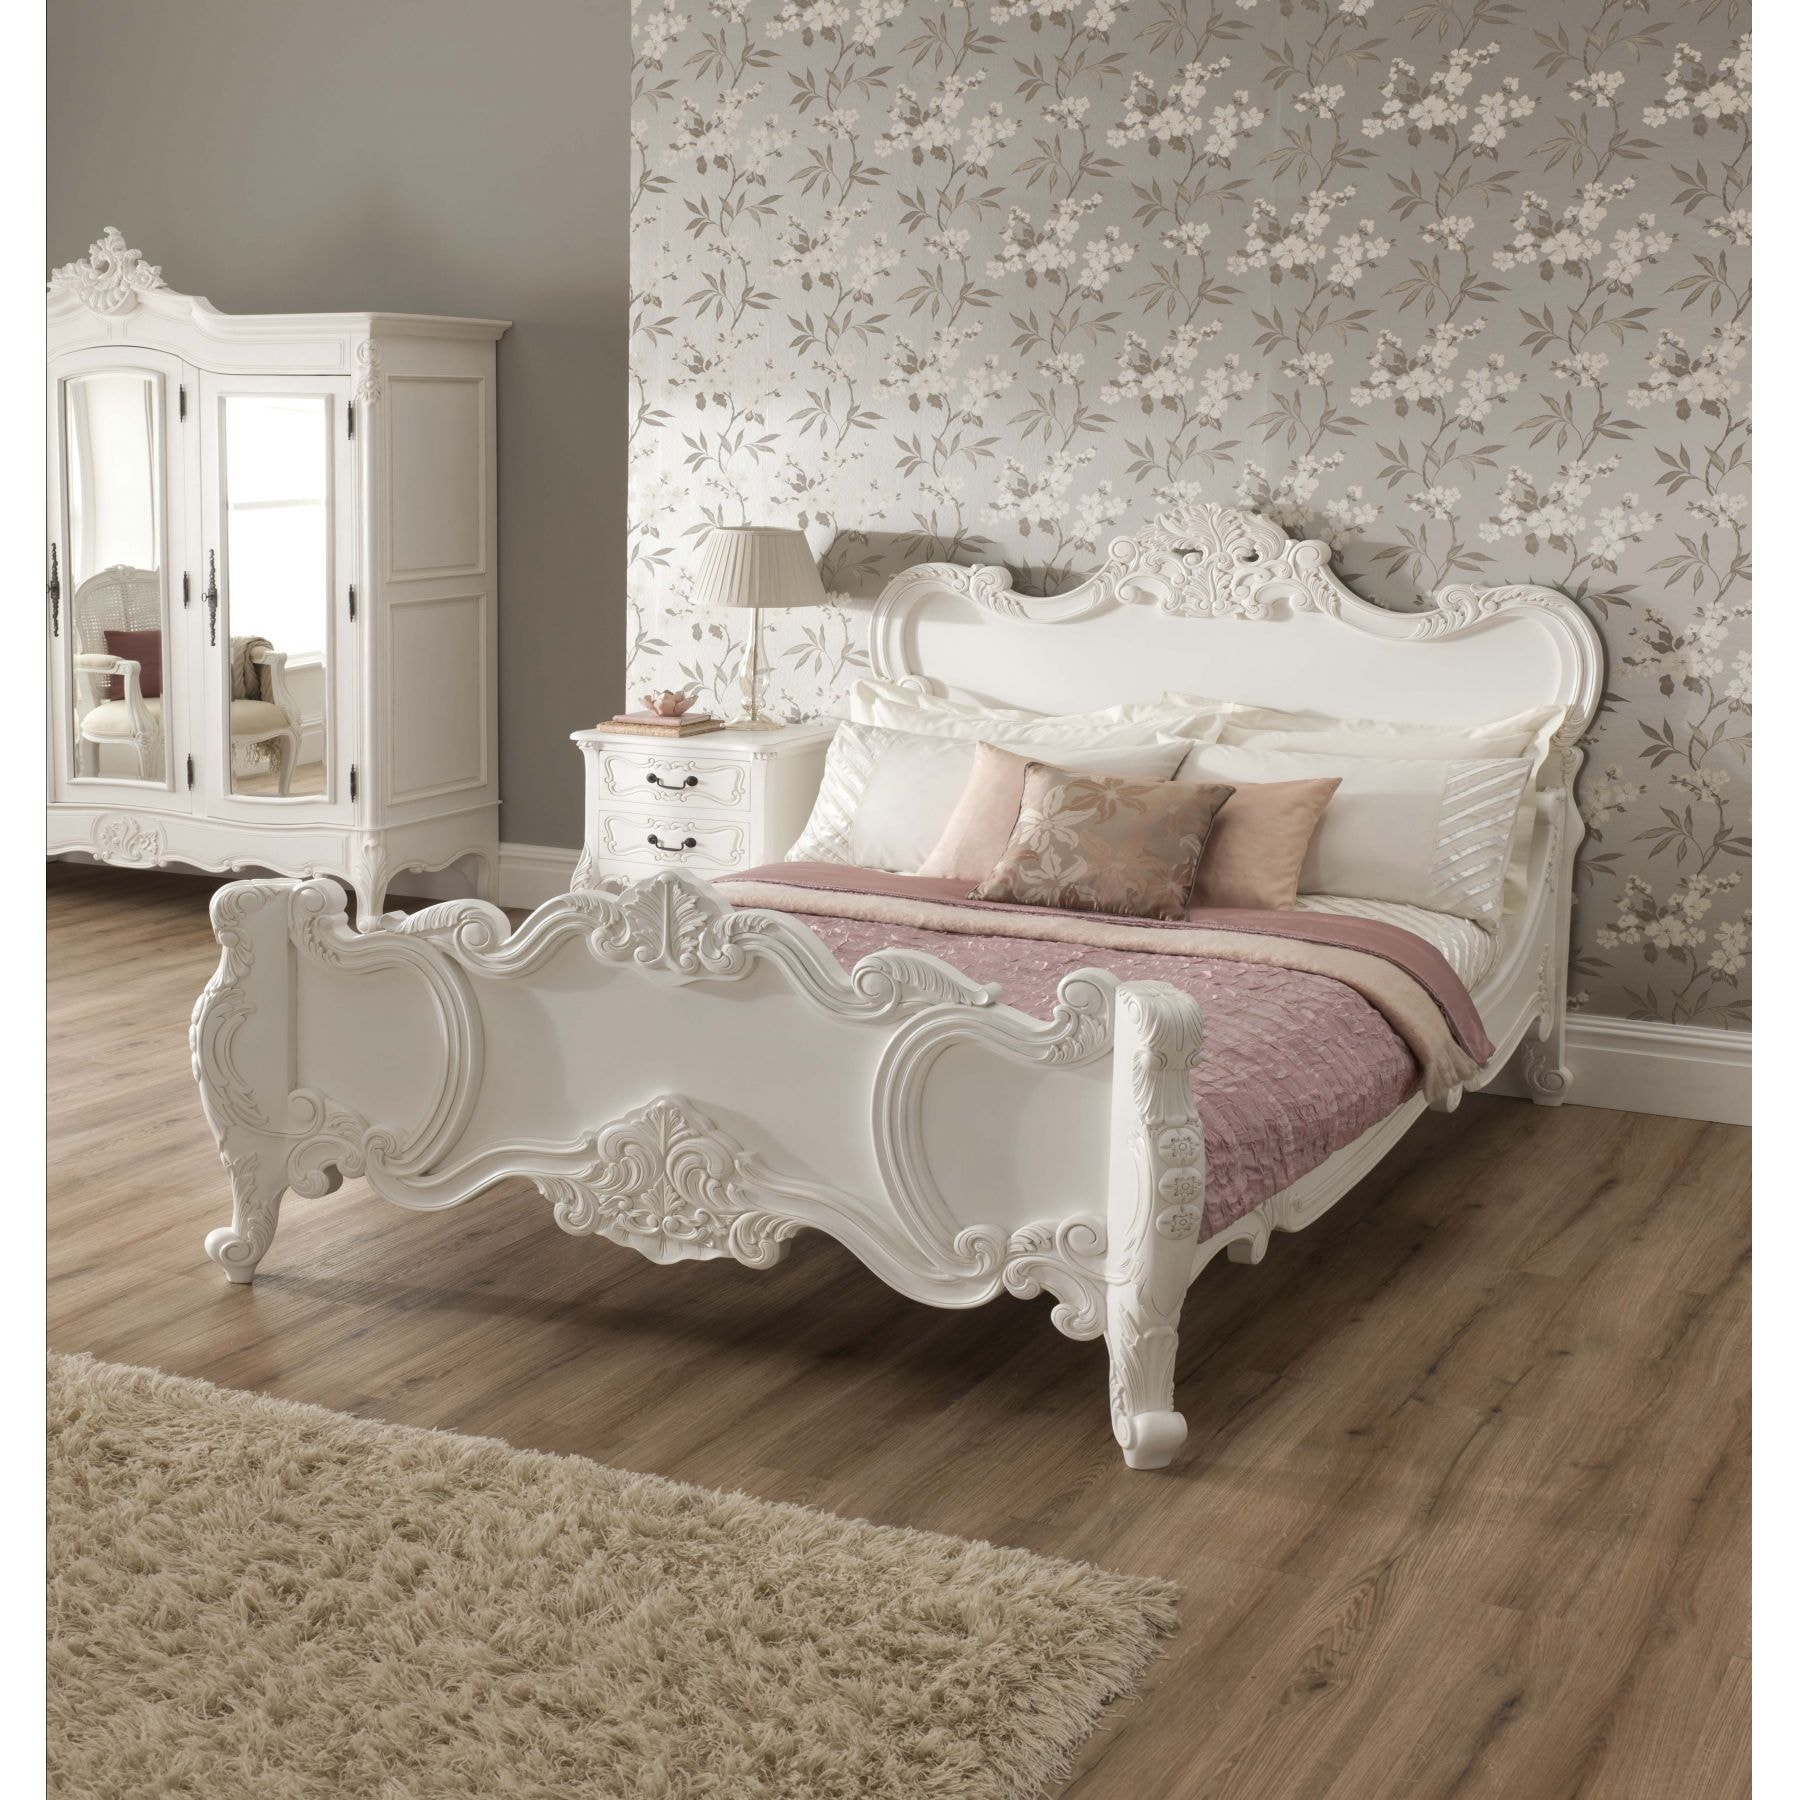 French Bedroom Furniture – Shabby Chic Or Classic Look?